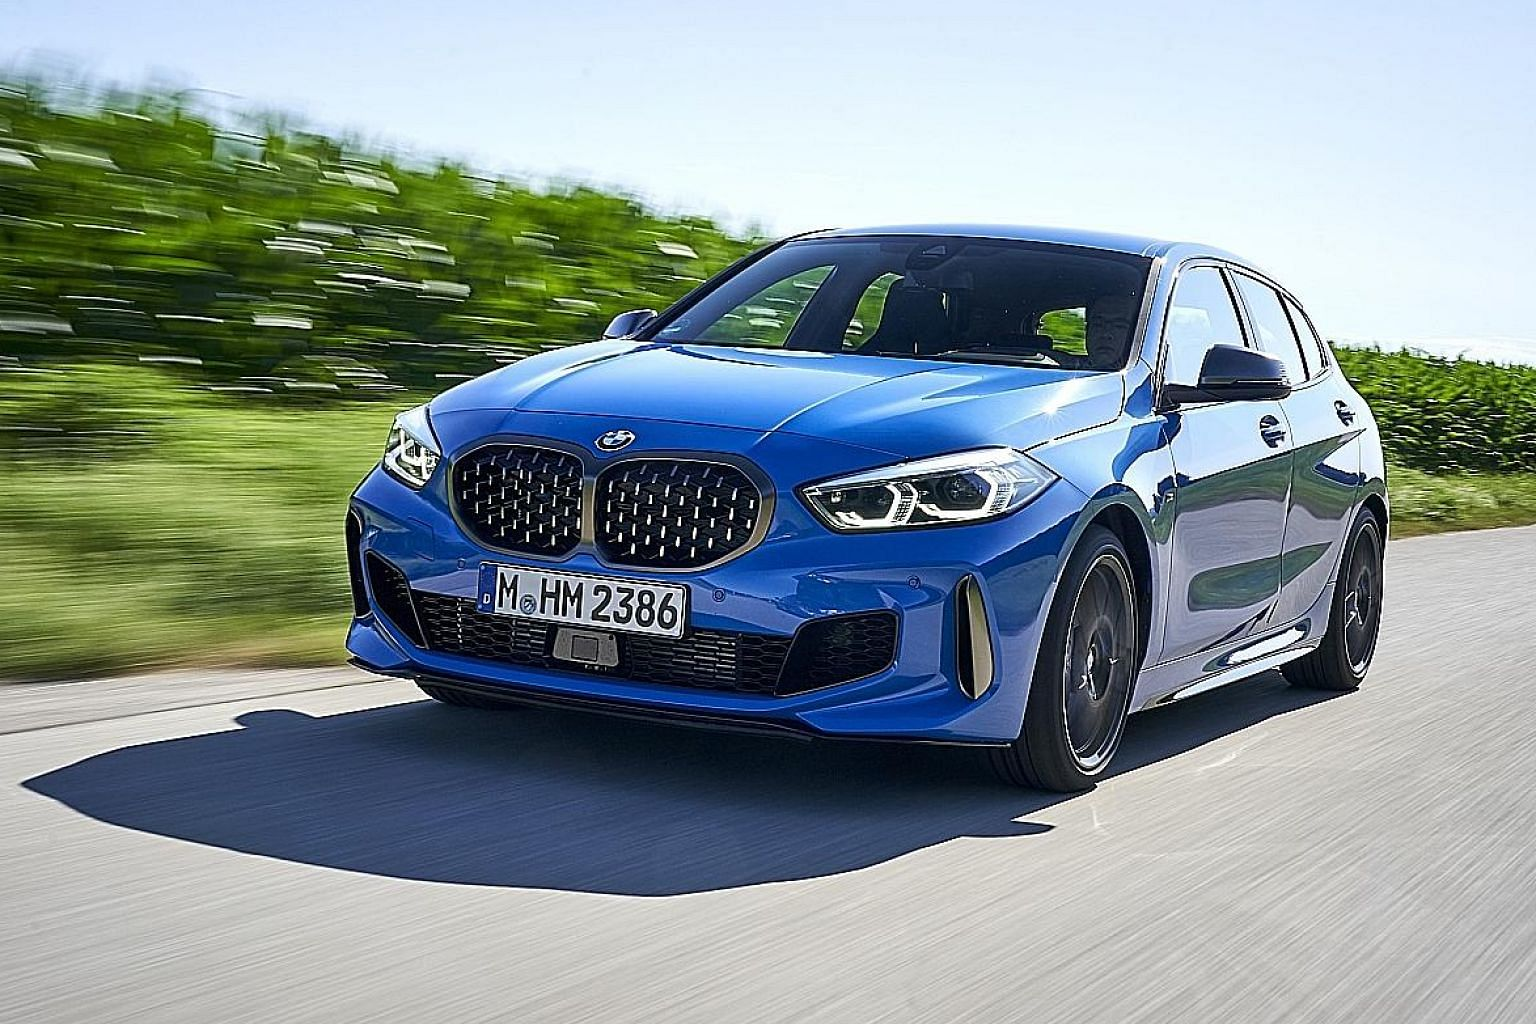 The BMW M135i packs a turbocharged 2.0-litre four-cylinder engine, with 306hp and 450Nm, and is paired with an eight-speed torque converter transmission.